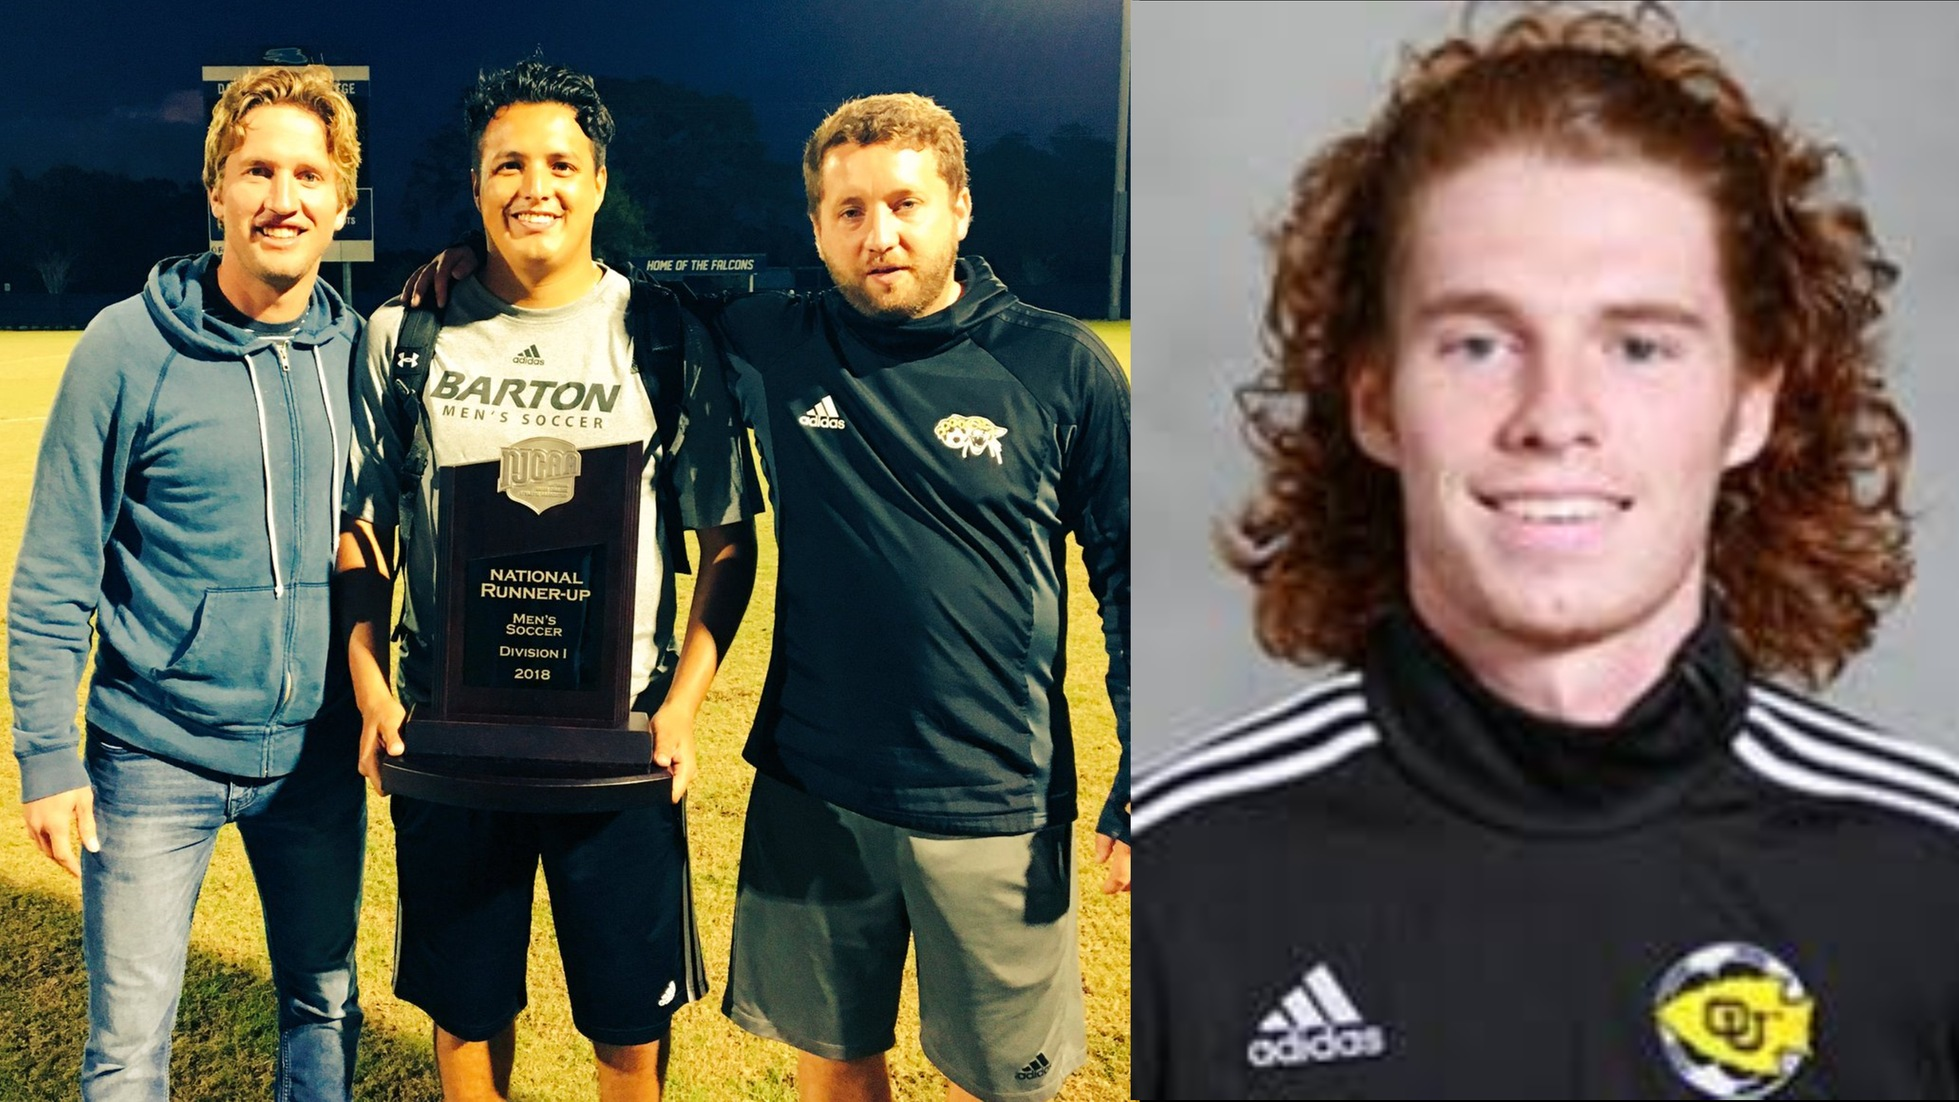 Reivers Welcome Home Estrada and Trent, Two Added to Men's Soccer Staff